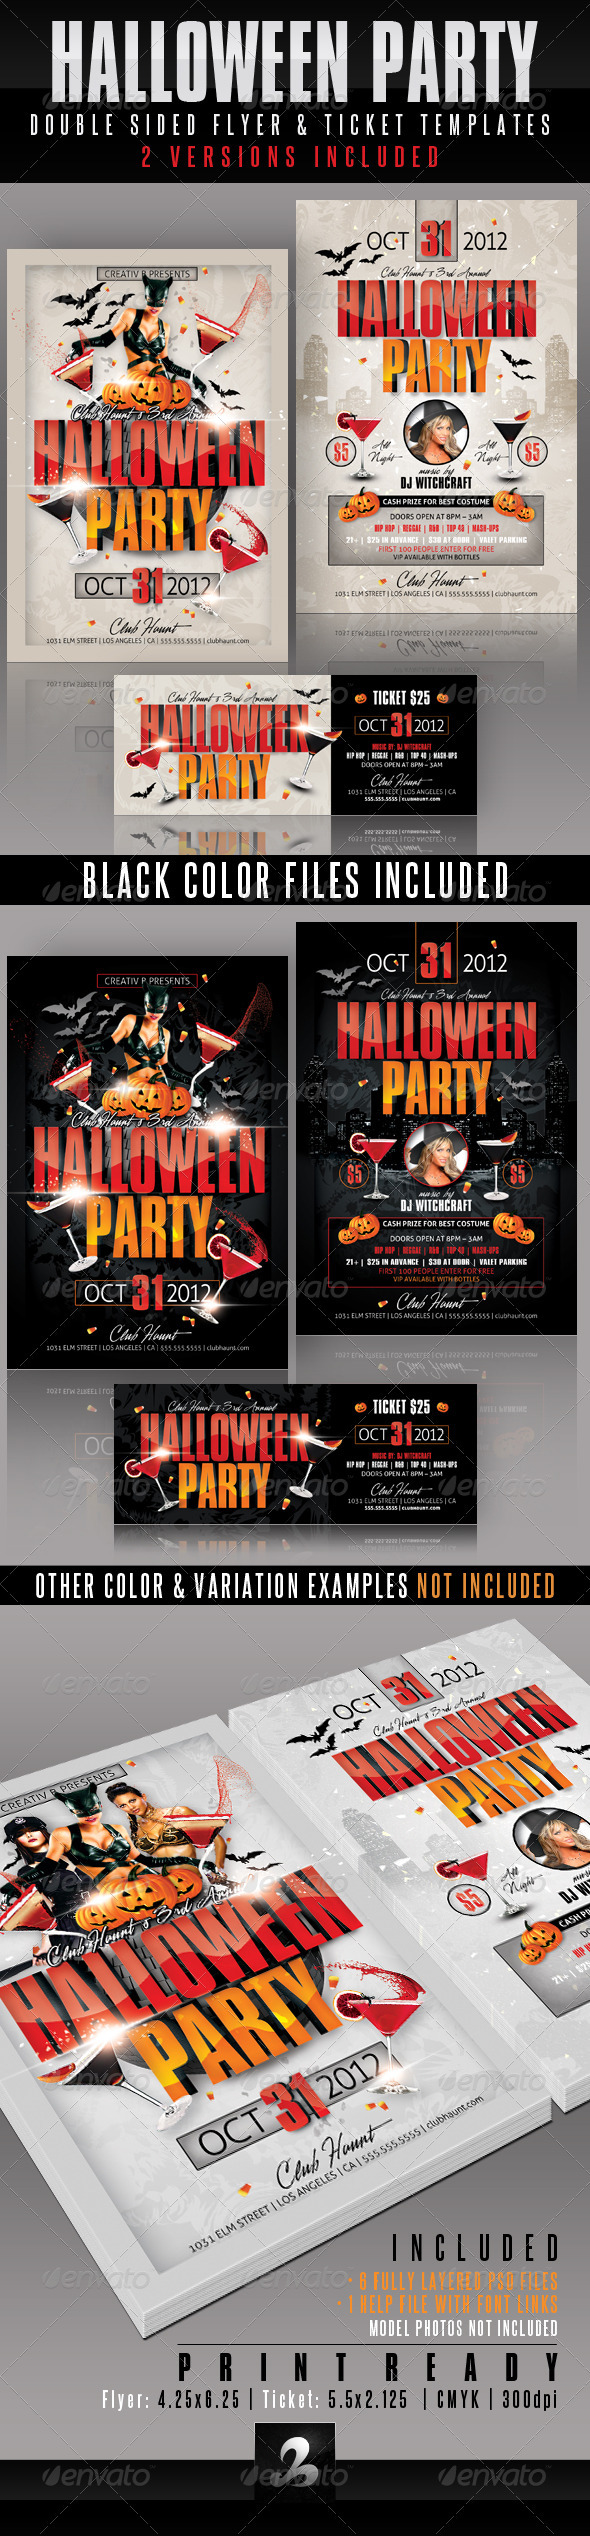 Halloween Party Flyer and Ticket Templates - Holidays Events